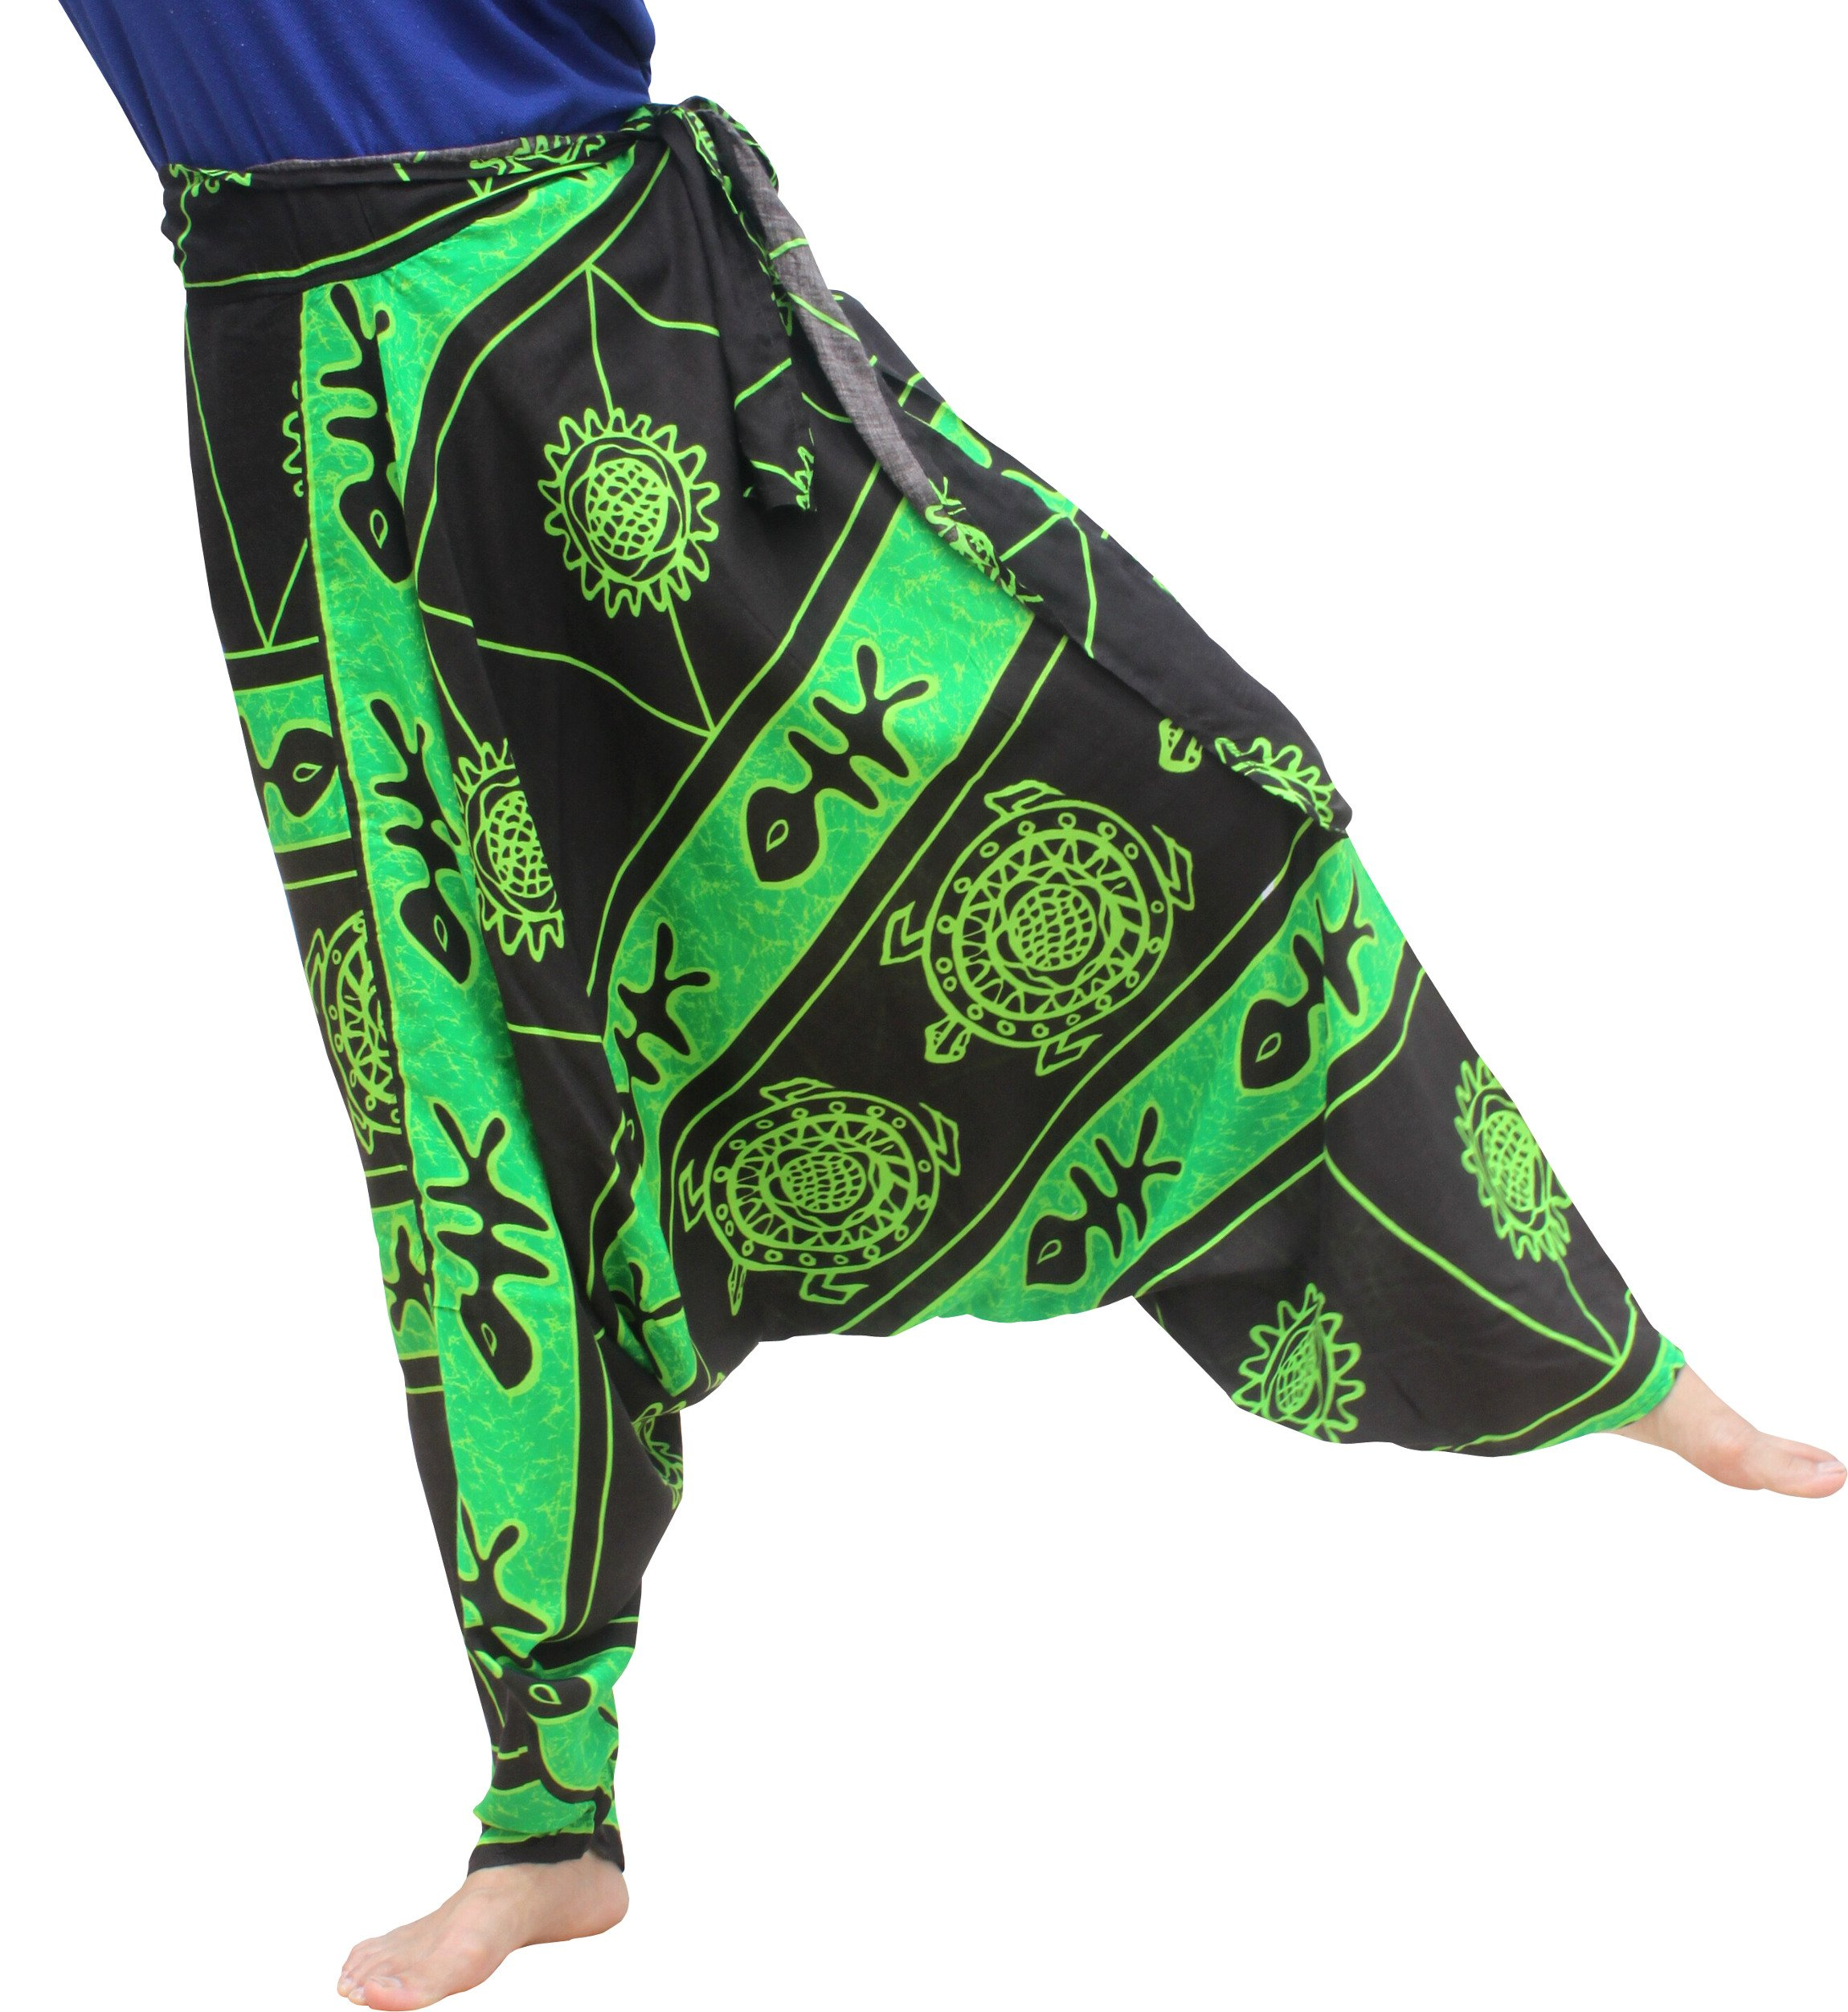 Raan Pah Muang Mixed Art Baggy Side Tie Mao Hmong Hill Tribe Harem Pants All Size, X-Large, Turtle Green Black by Raan Pah Muang